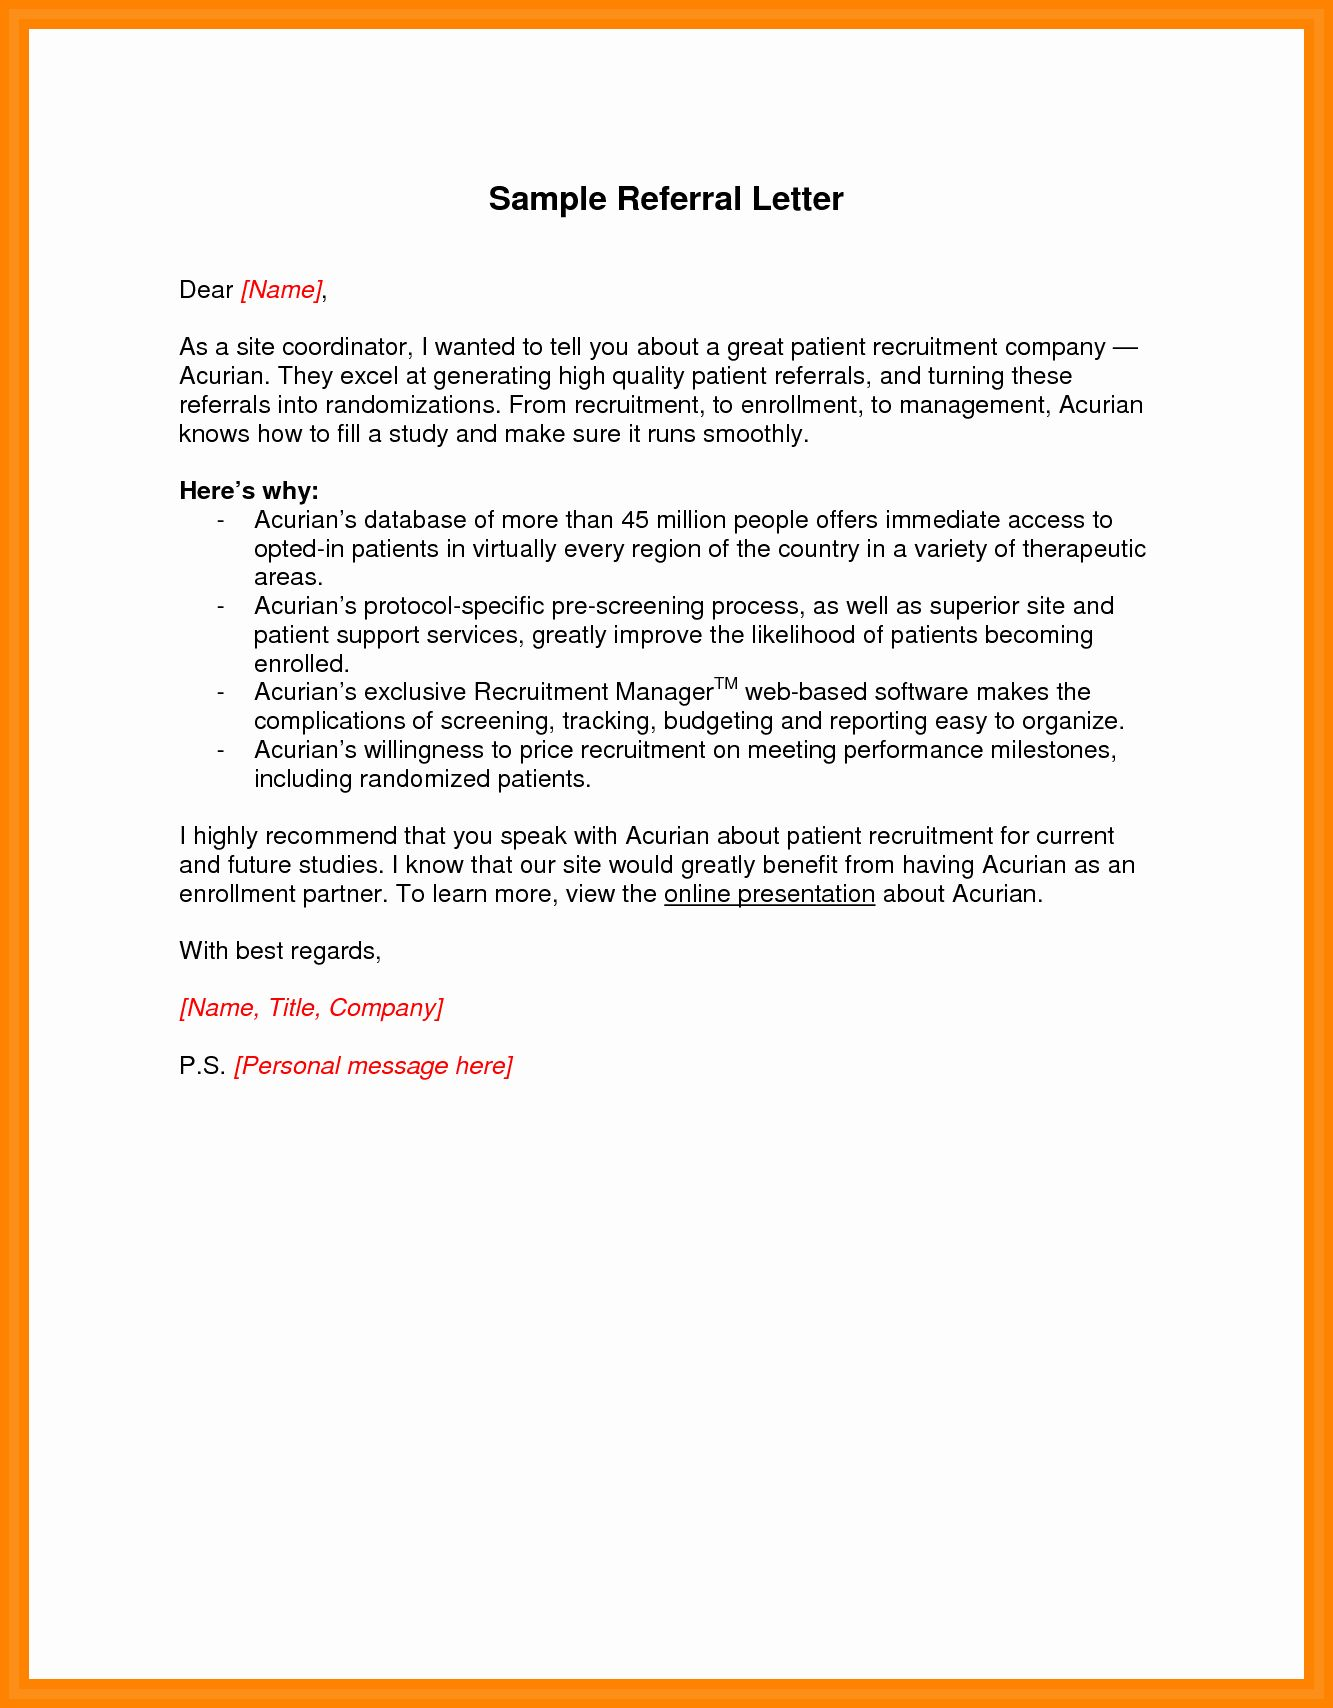 25 medical referral letter template in 2020 resume format commerce graduates key account manager examples entry level business management